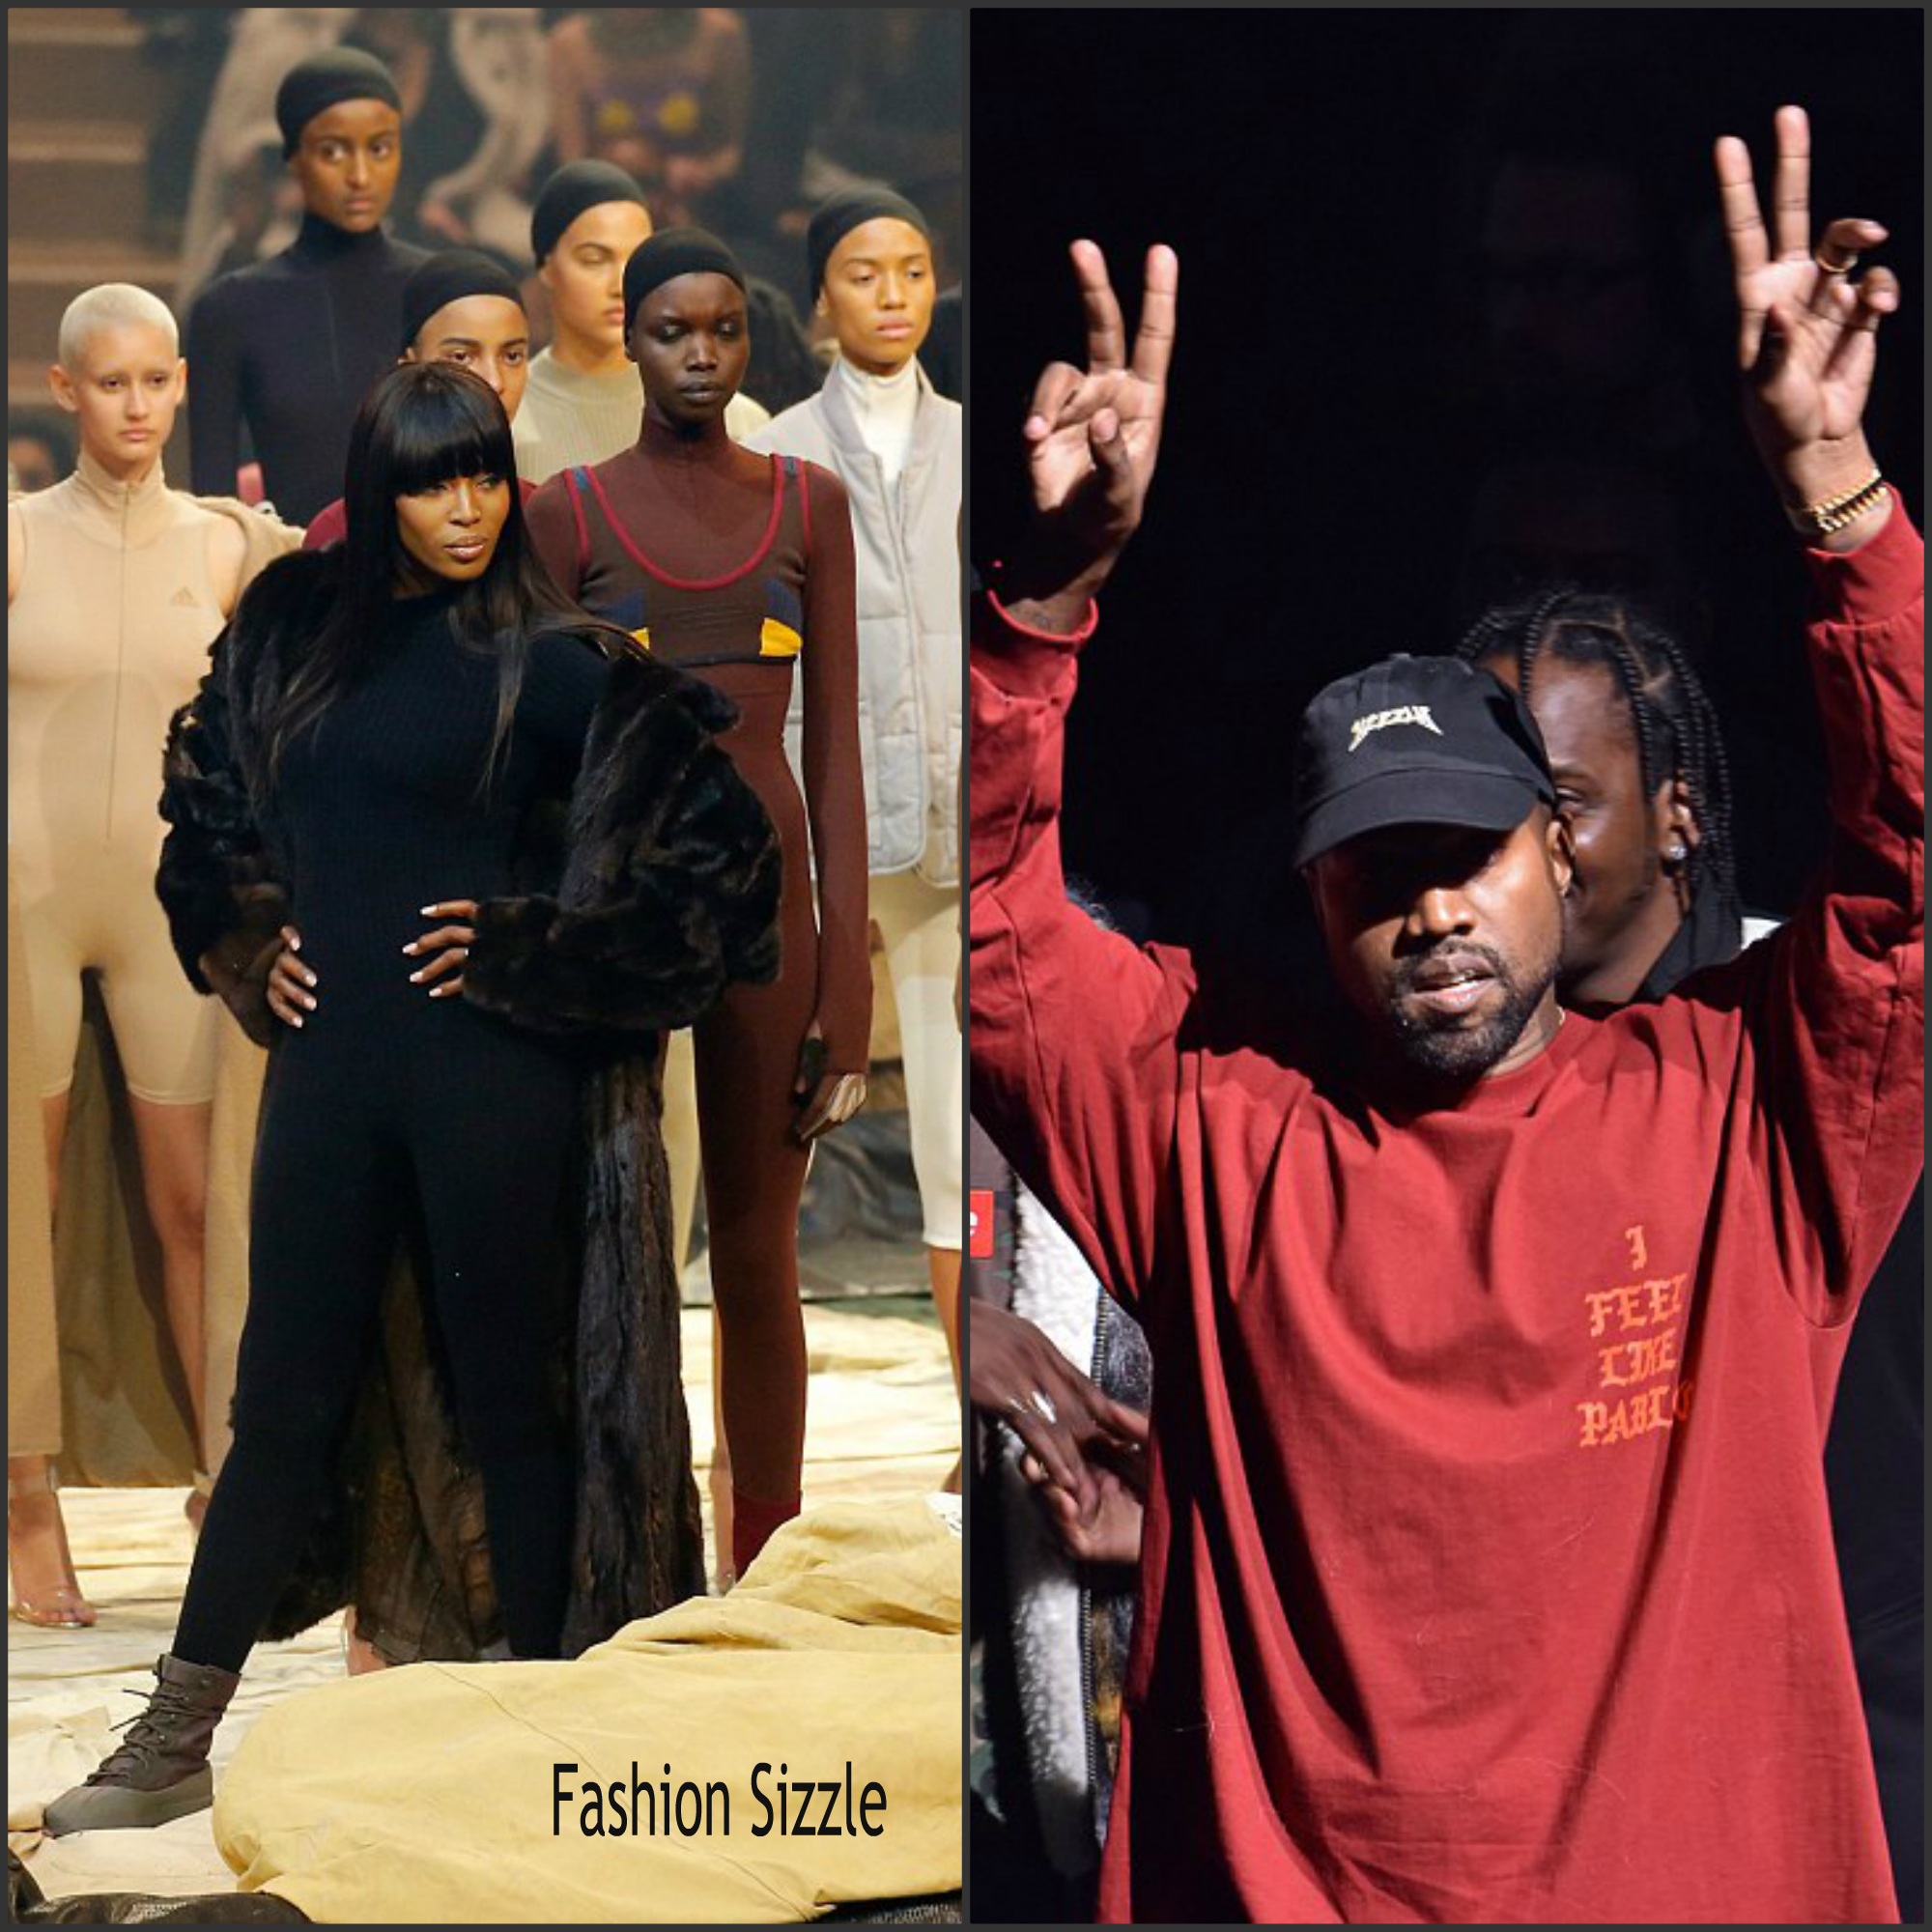 Kanye West Yeezy3 Fashion Show U2013 Madison Square Garden